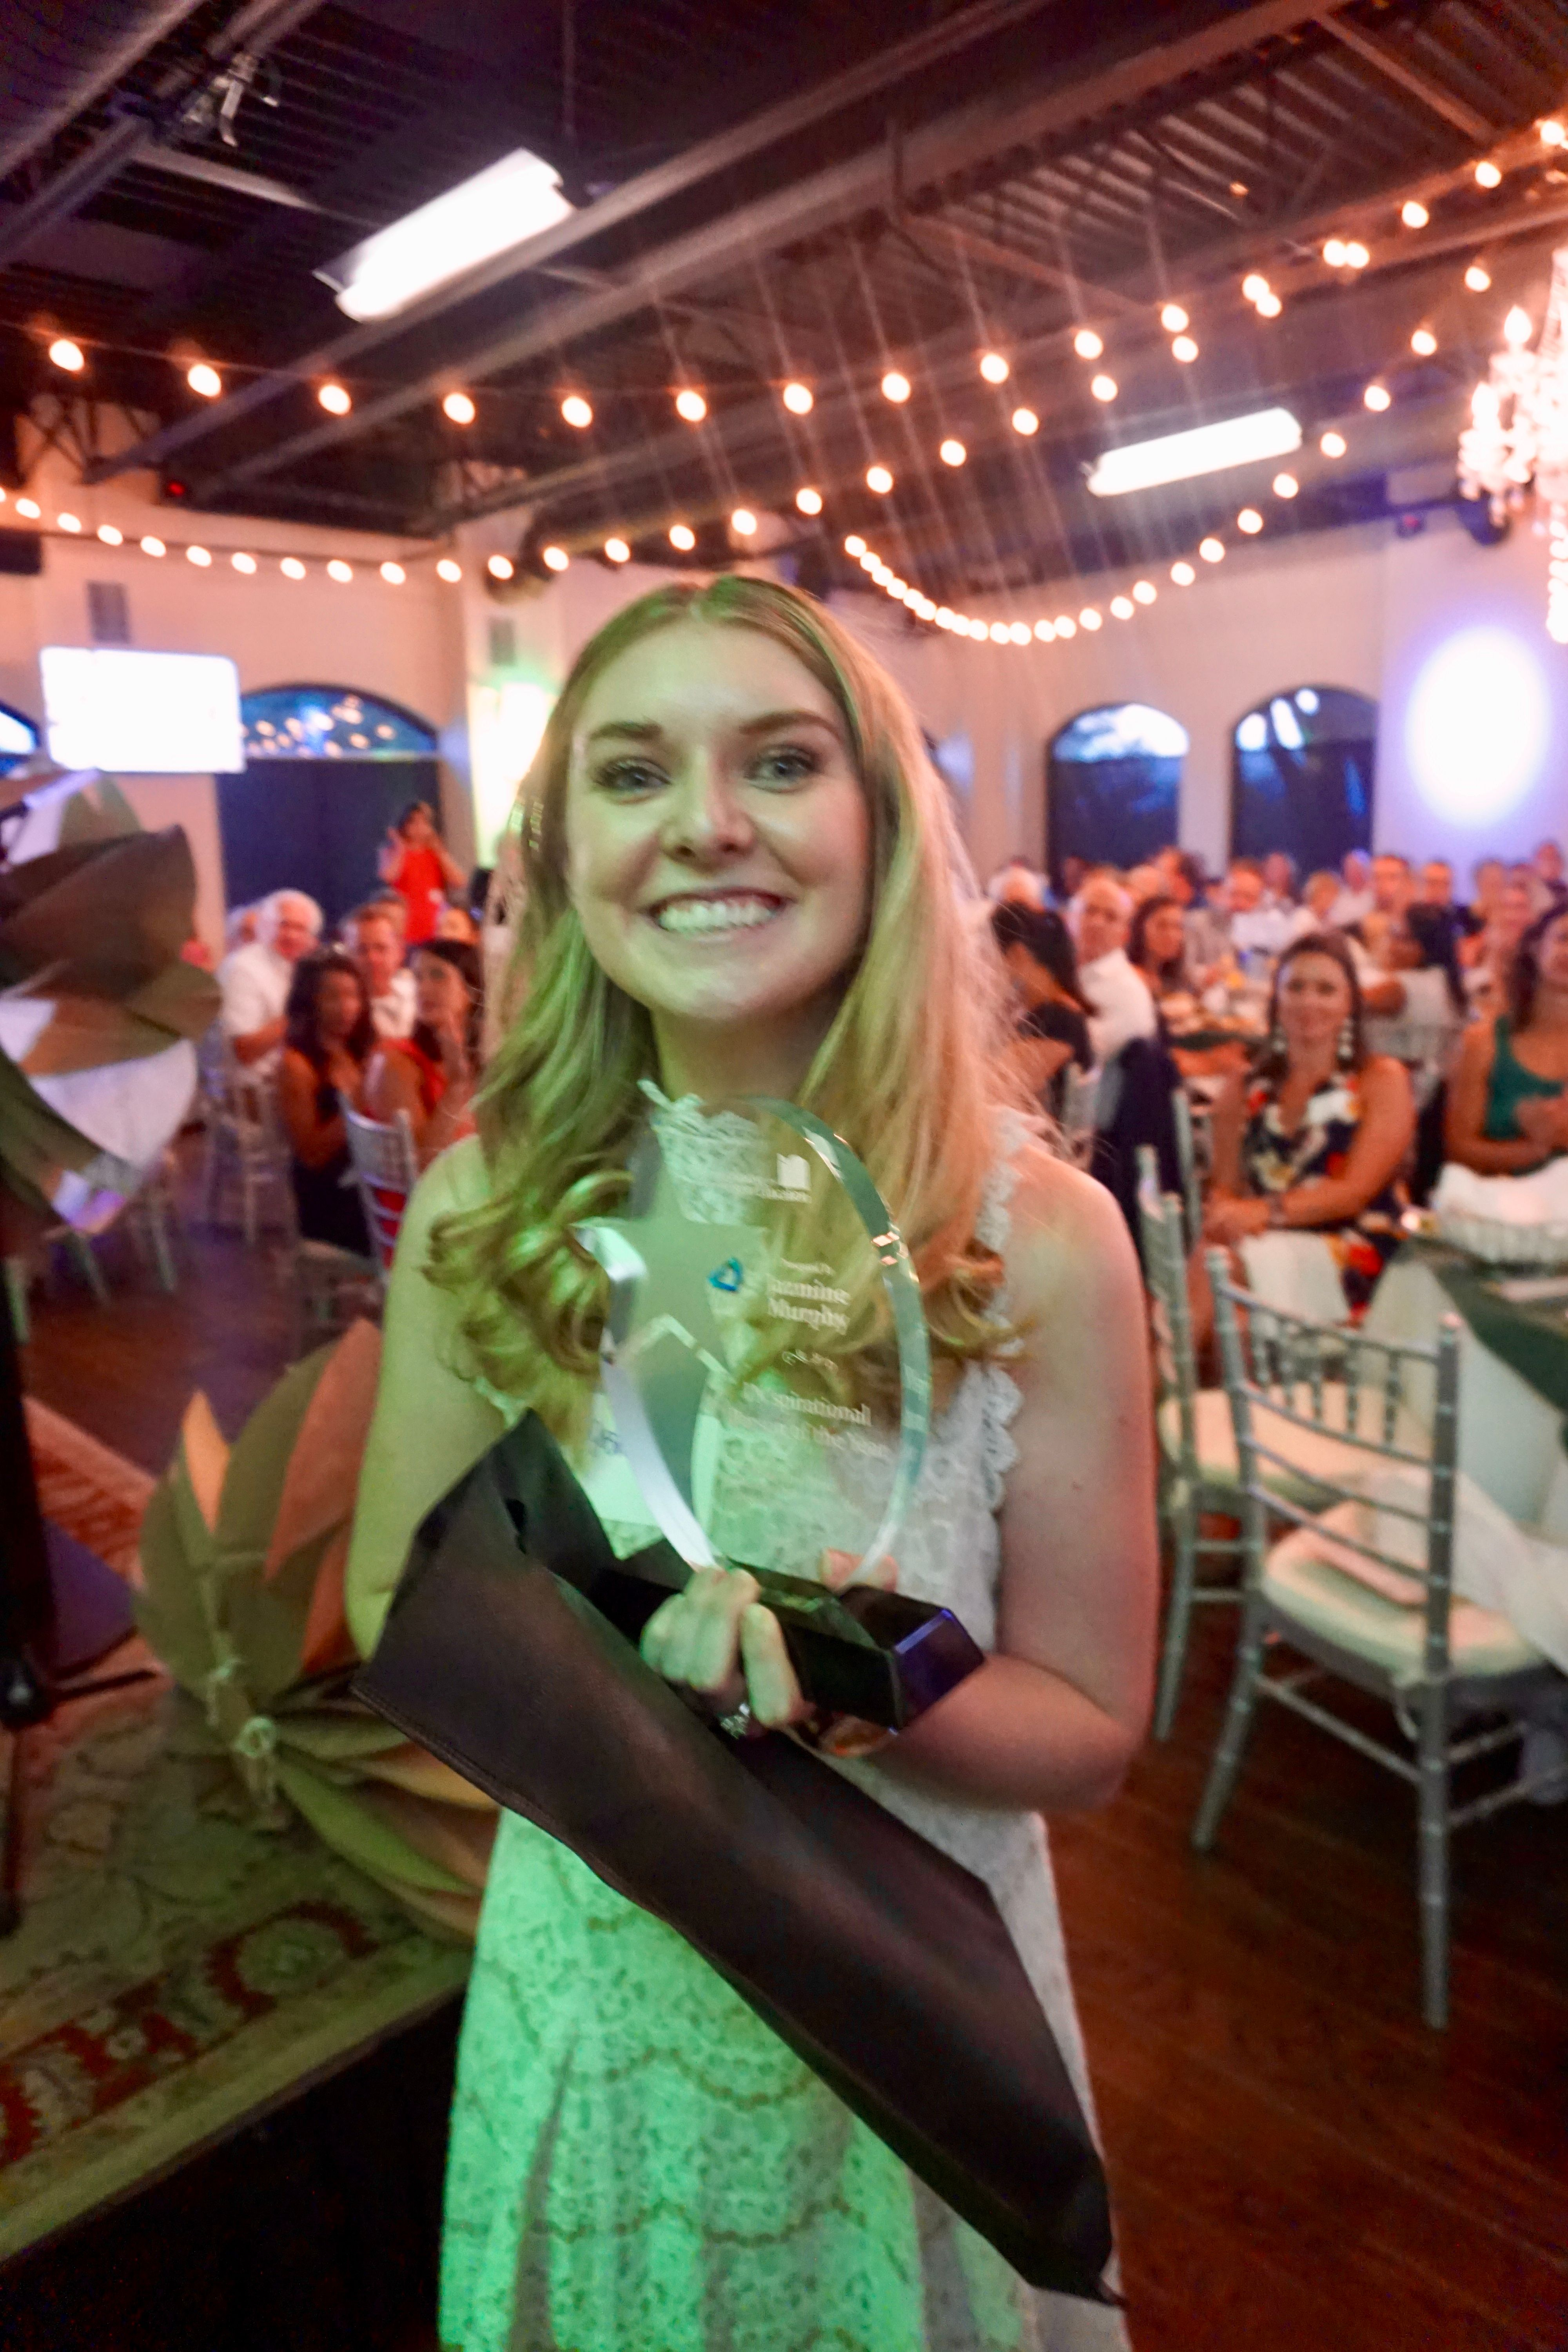 Jazmine stands in banquet room holding an award